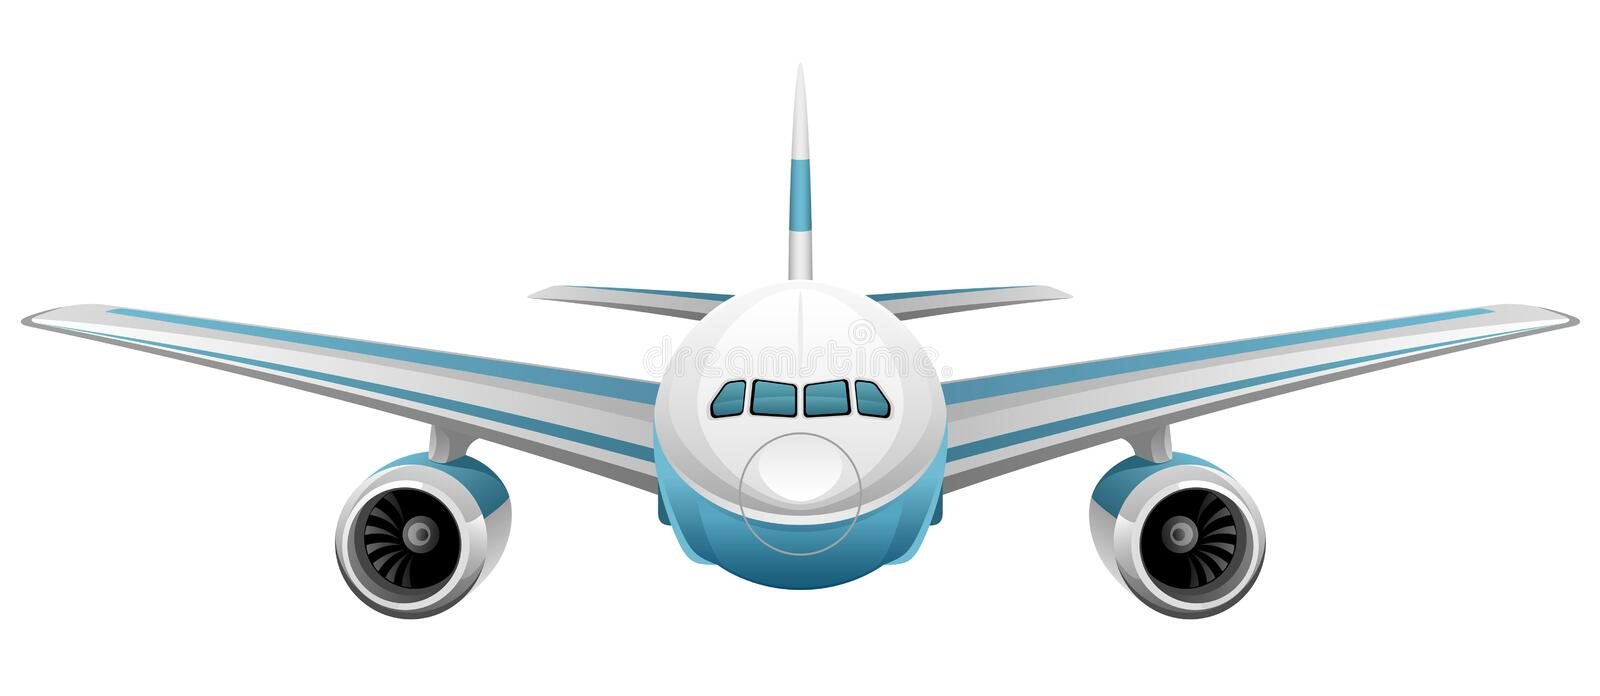 Airplane. On a white background royalty free illustration